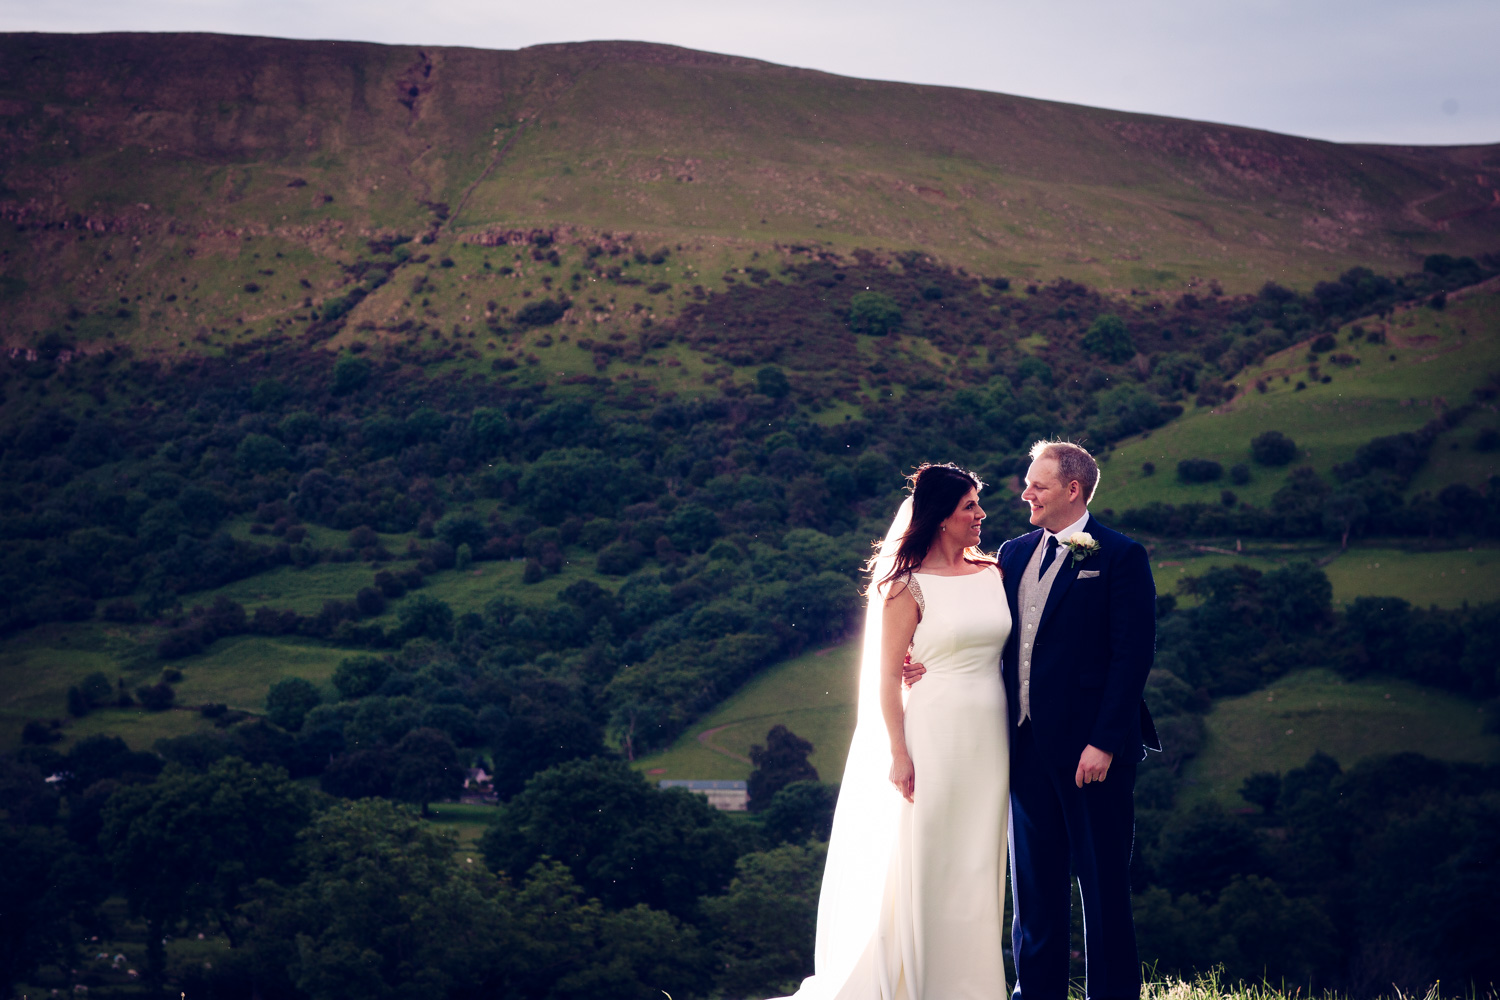 Mark_Barnes_Northern_Ireland_wedding_photographer_Kilmore_House_Wedding_photography_Kilmore_House_wedding_photographer-66.jpg